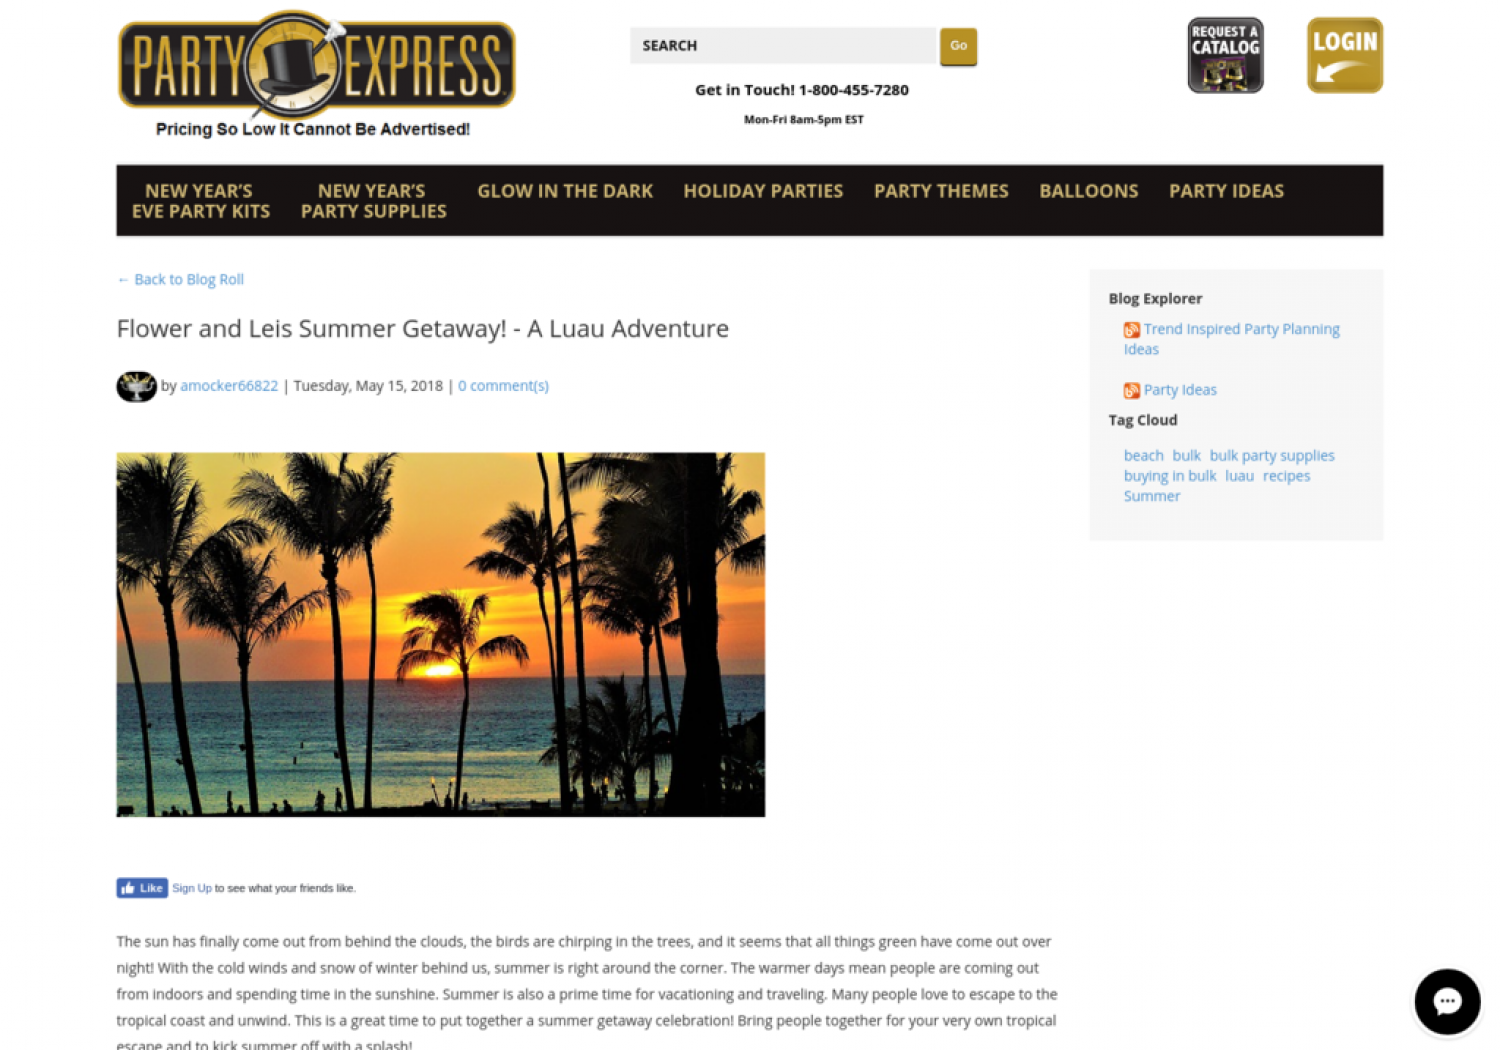 Flower and Leis Summer Getaway! - A Luau Adventure Infographic